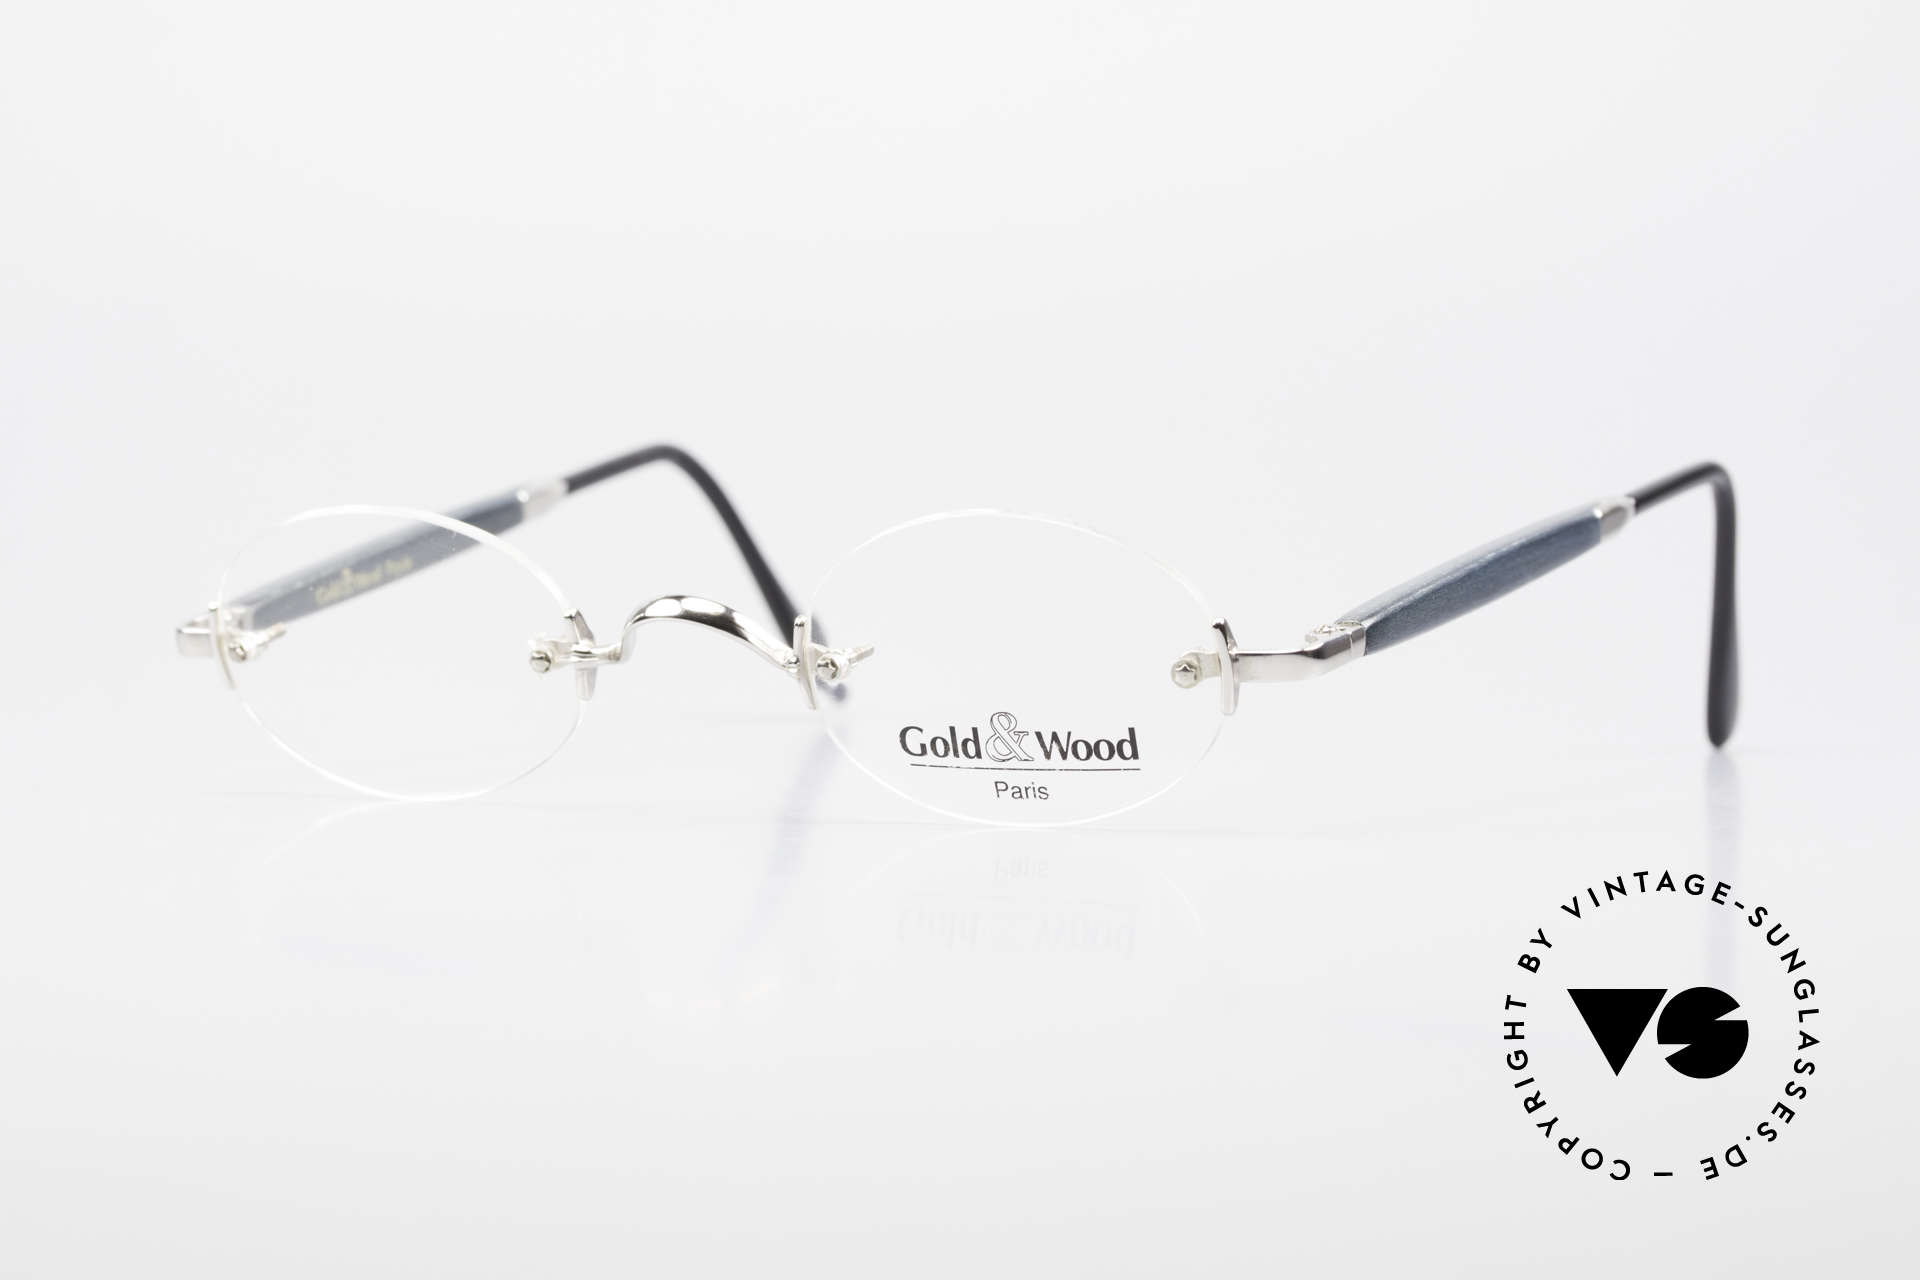 Gold & Wood 338 Luxury Rimless Specs Oval 90's, Gold & Wood Paris glasses, 338-16 in size 42-26, Made for Men and Women